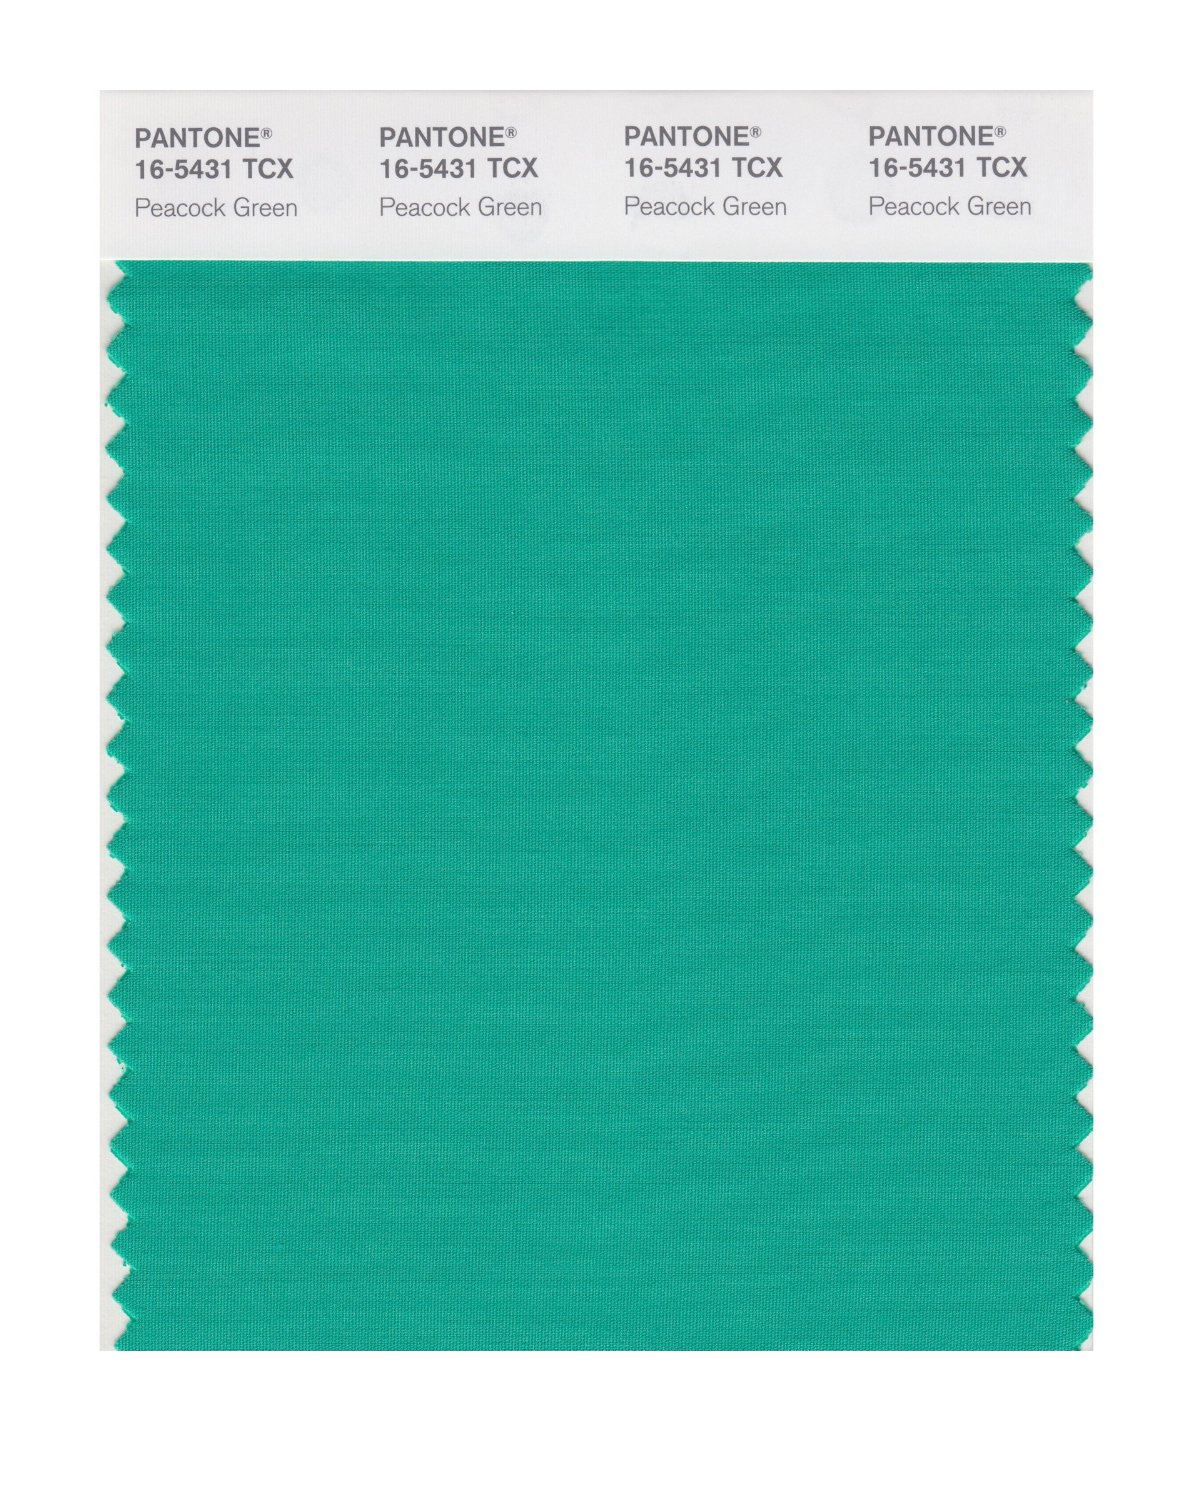 Pantone Smart Swatch 16-5431 Peacock Green